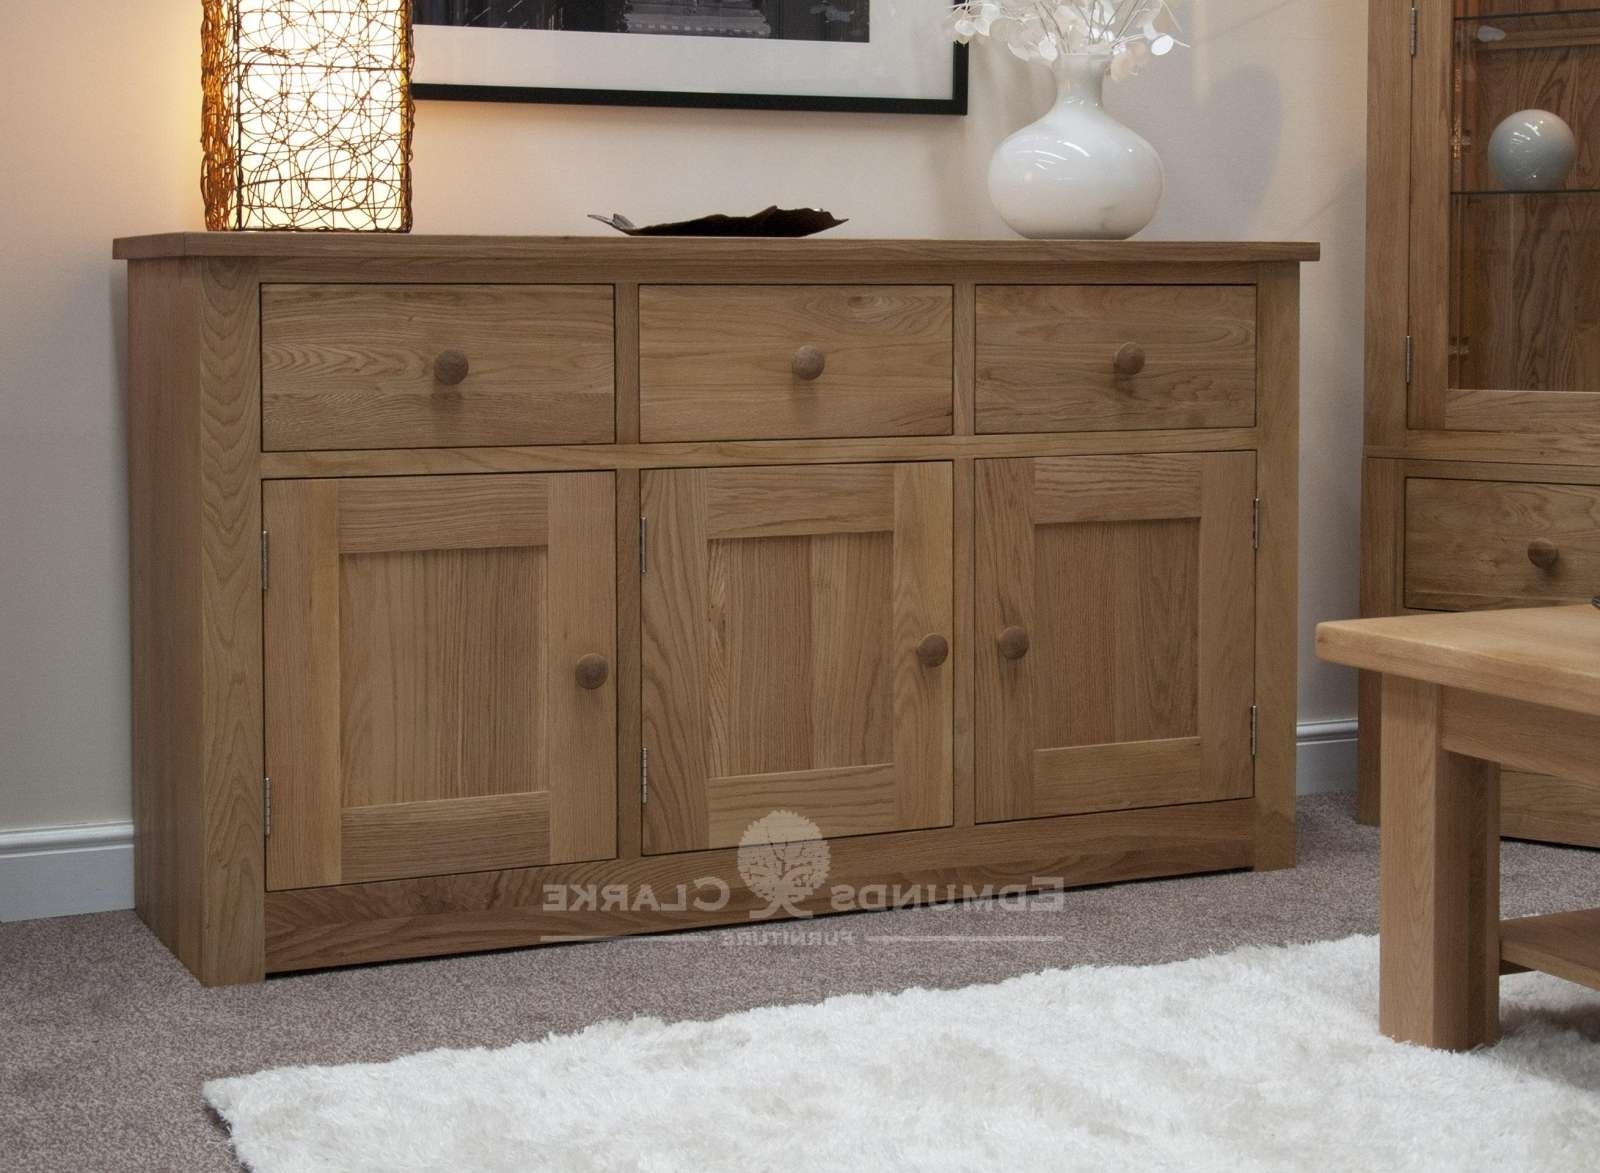 Oak Large Sideboard – Oak Sideboards For The Kitchen, Dining Room With Regard To Lounge Sideboards (View 2 of 20)